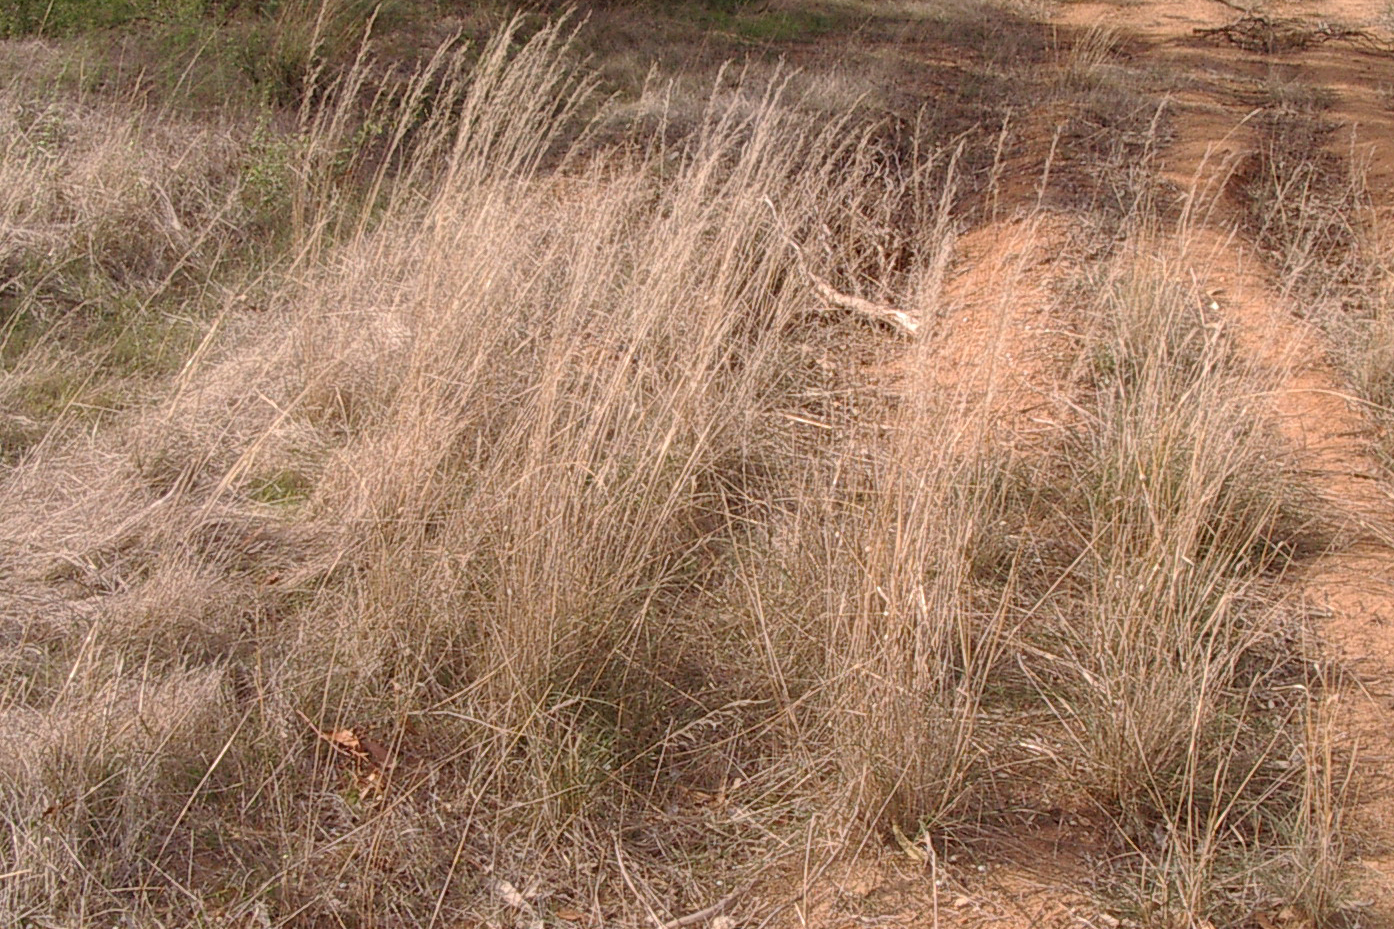 Australian Native Grasses Images